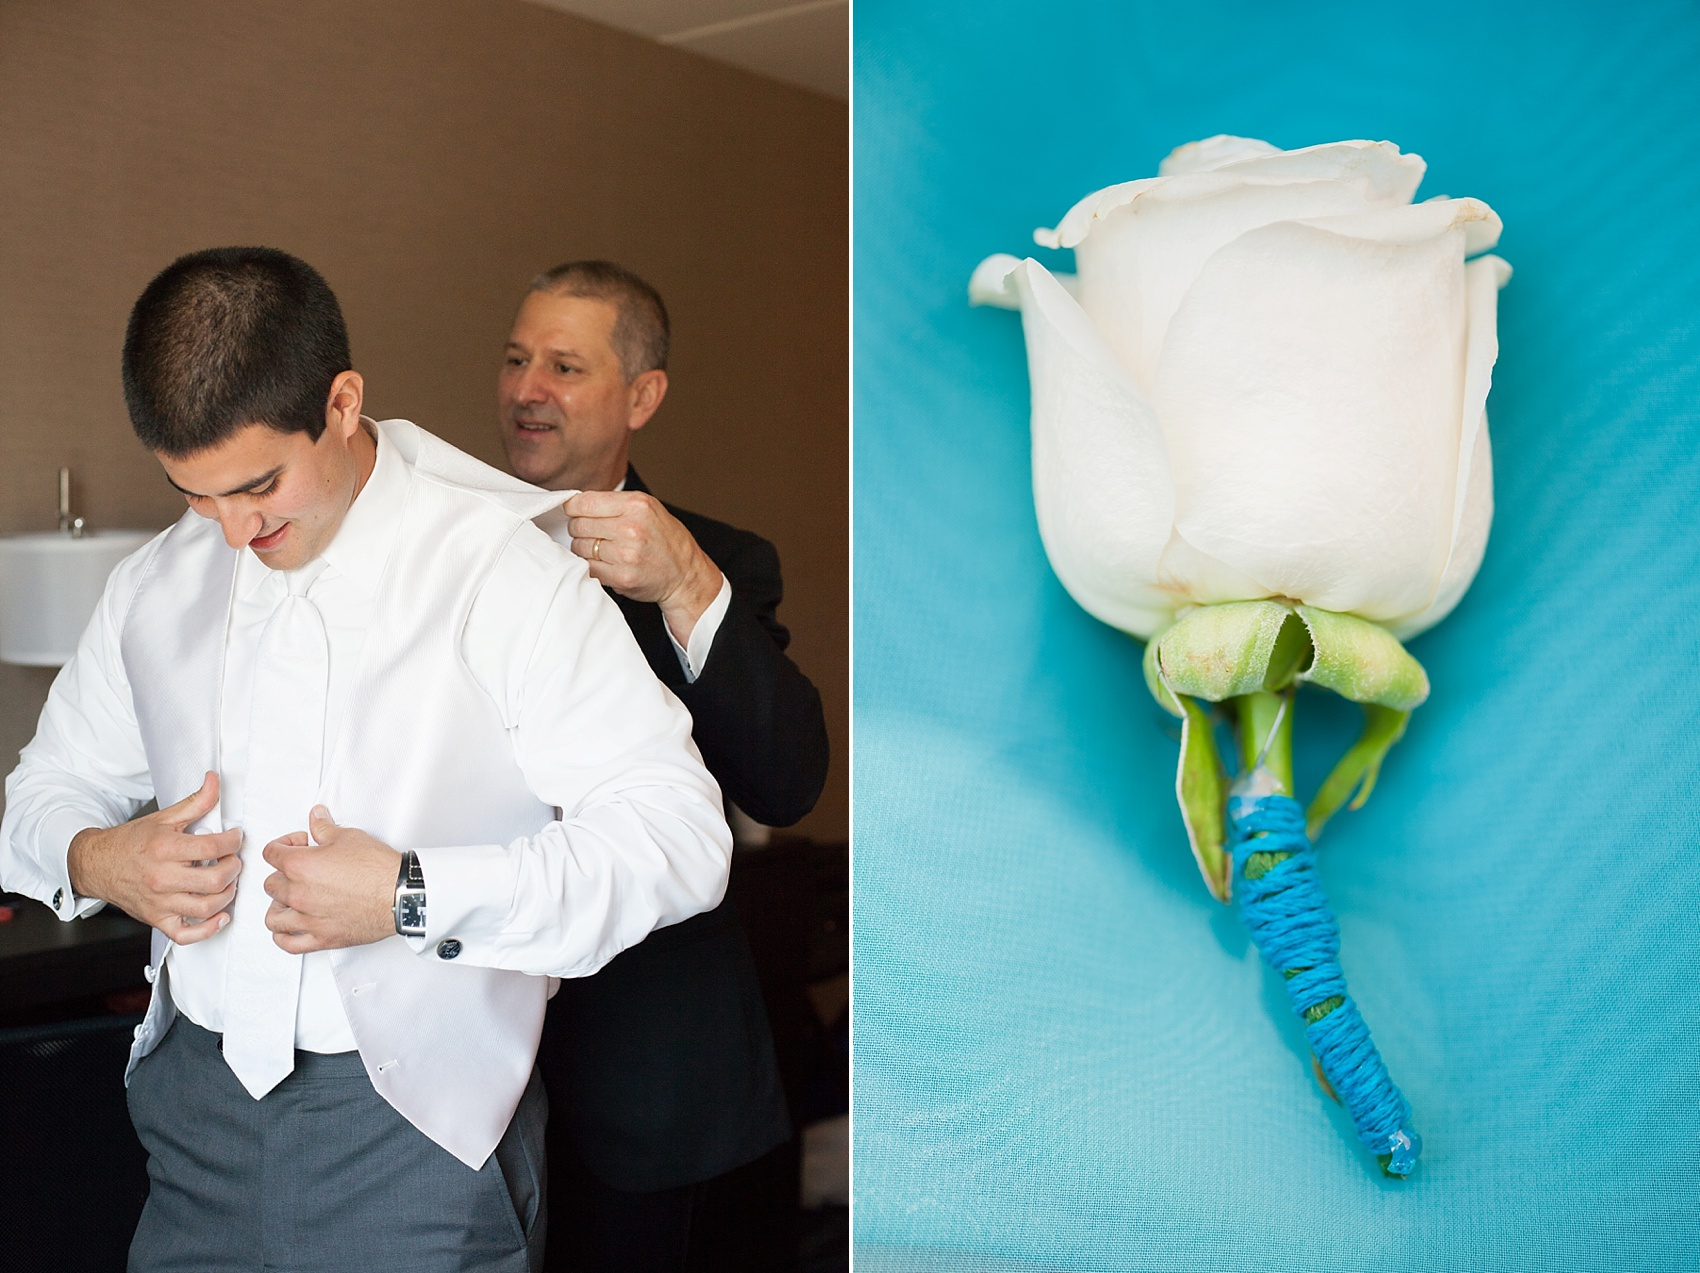 Teal wrapped white rose boutonniere for the groom getting ready. Photos by Mikkel Paige Photography for a Hollow Brook Golf Club wedding.